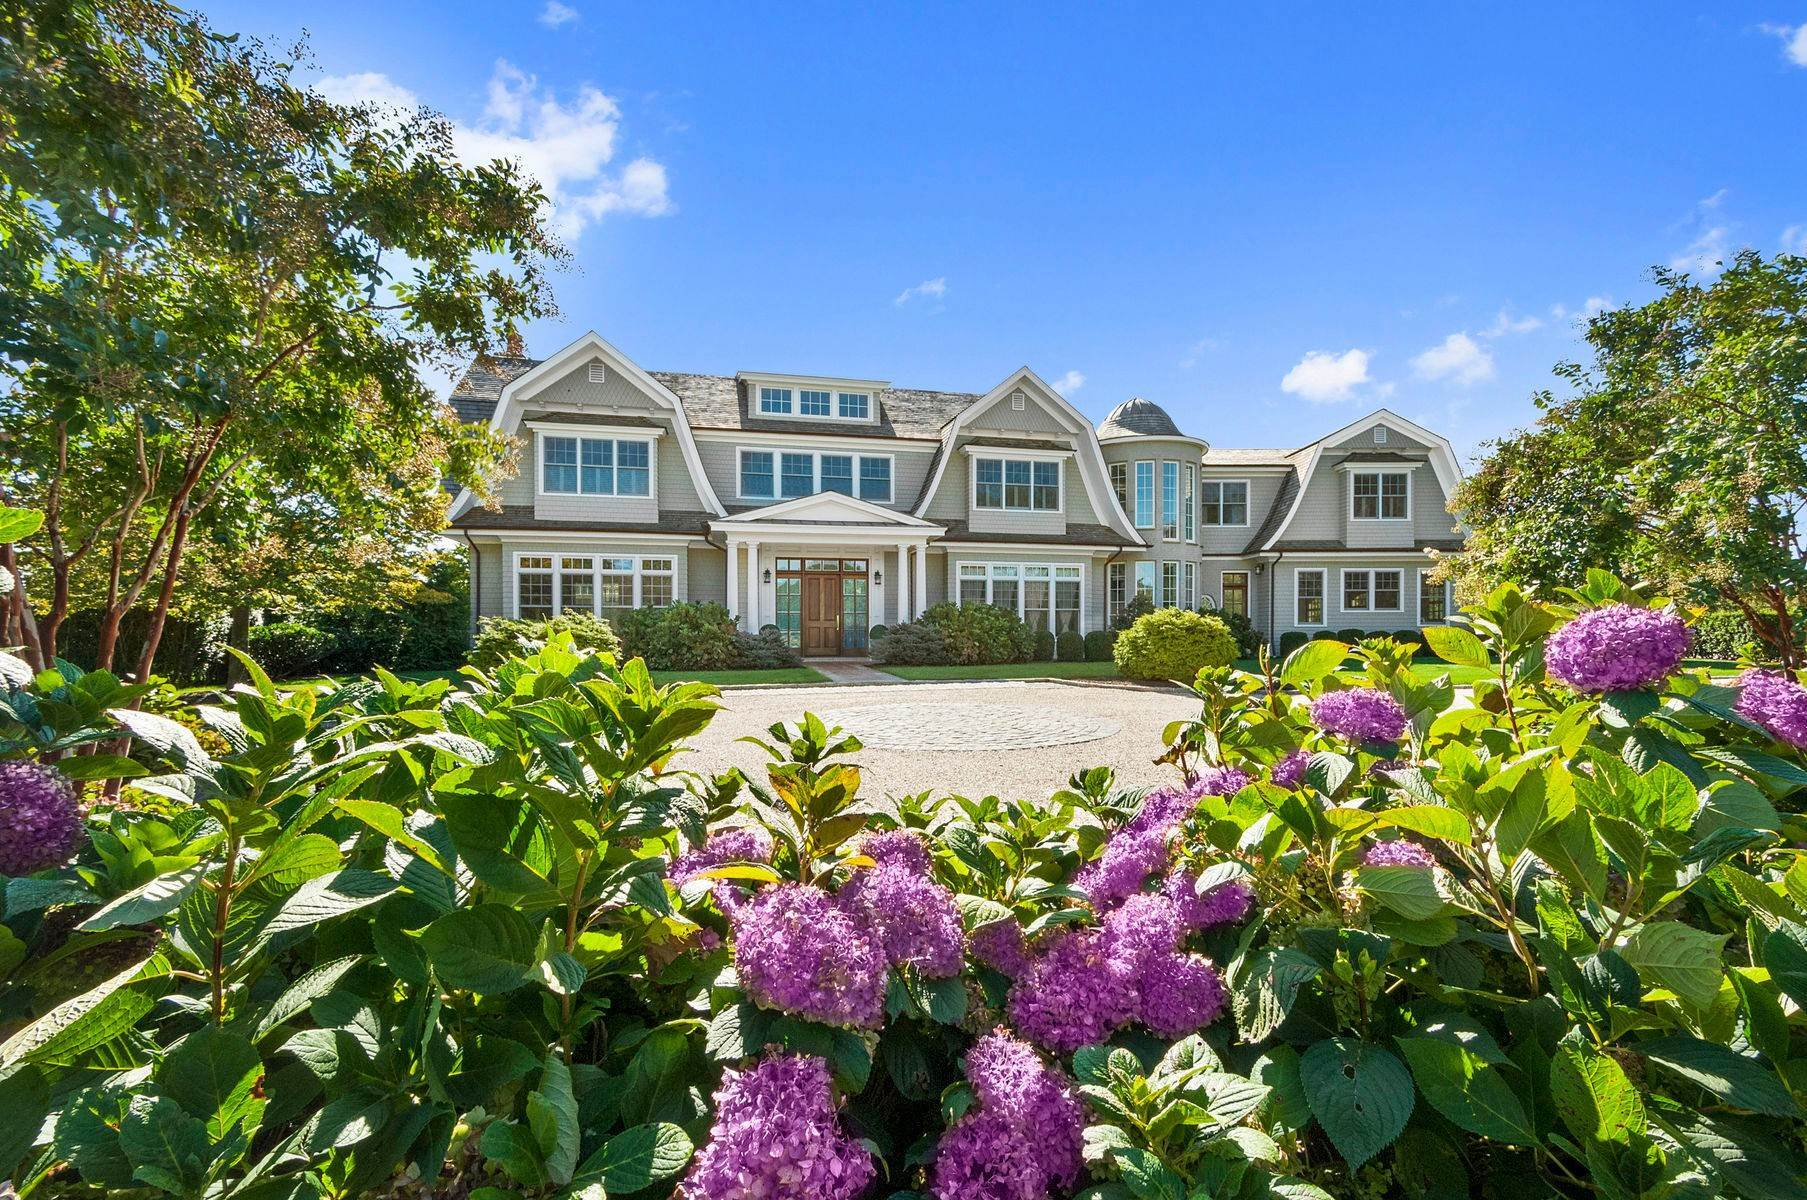 Single Family Home at Sagaponack Estate With Farm Views 515 Parsonage Lane, Sagaponack Village, NY 11962